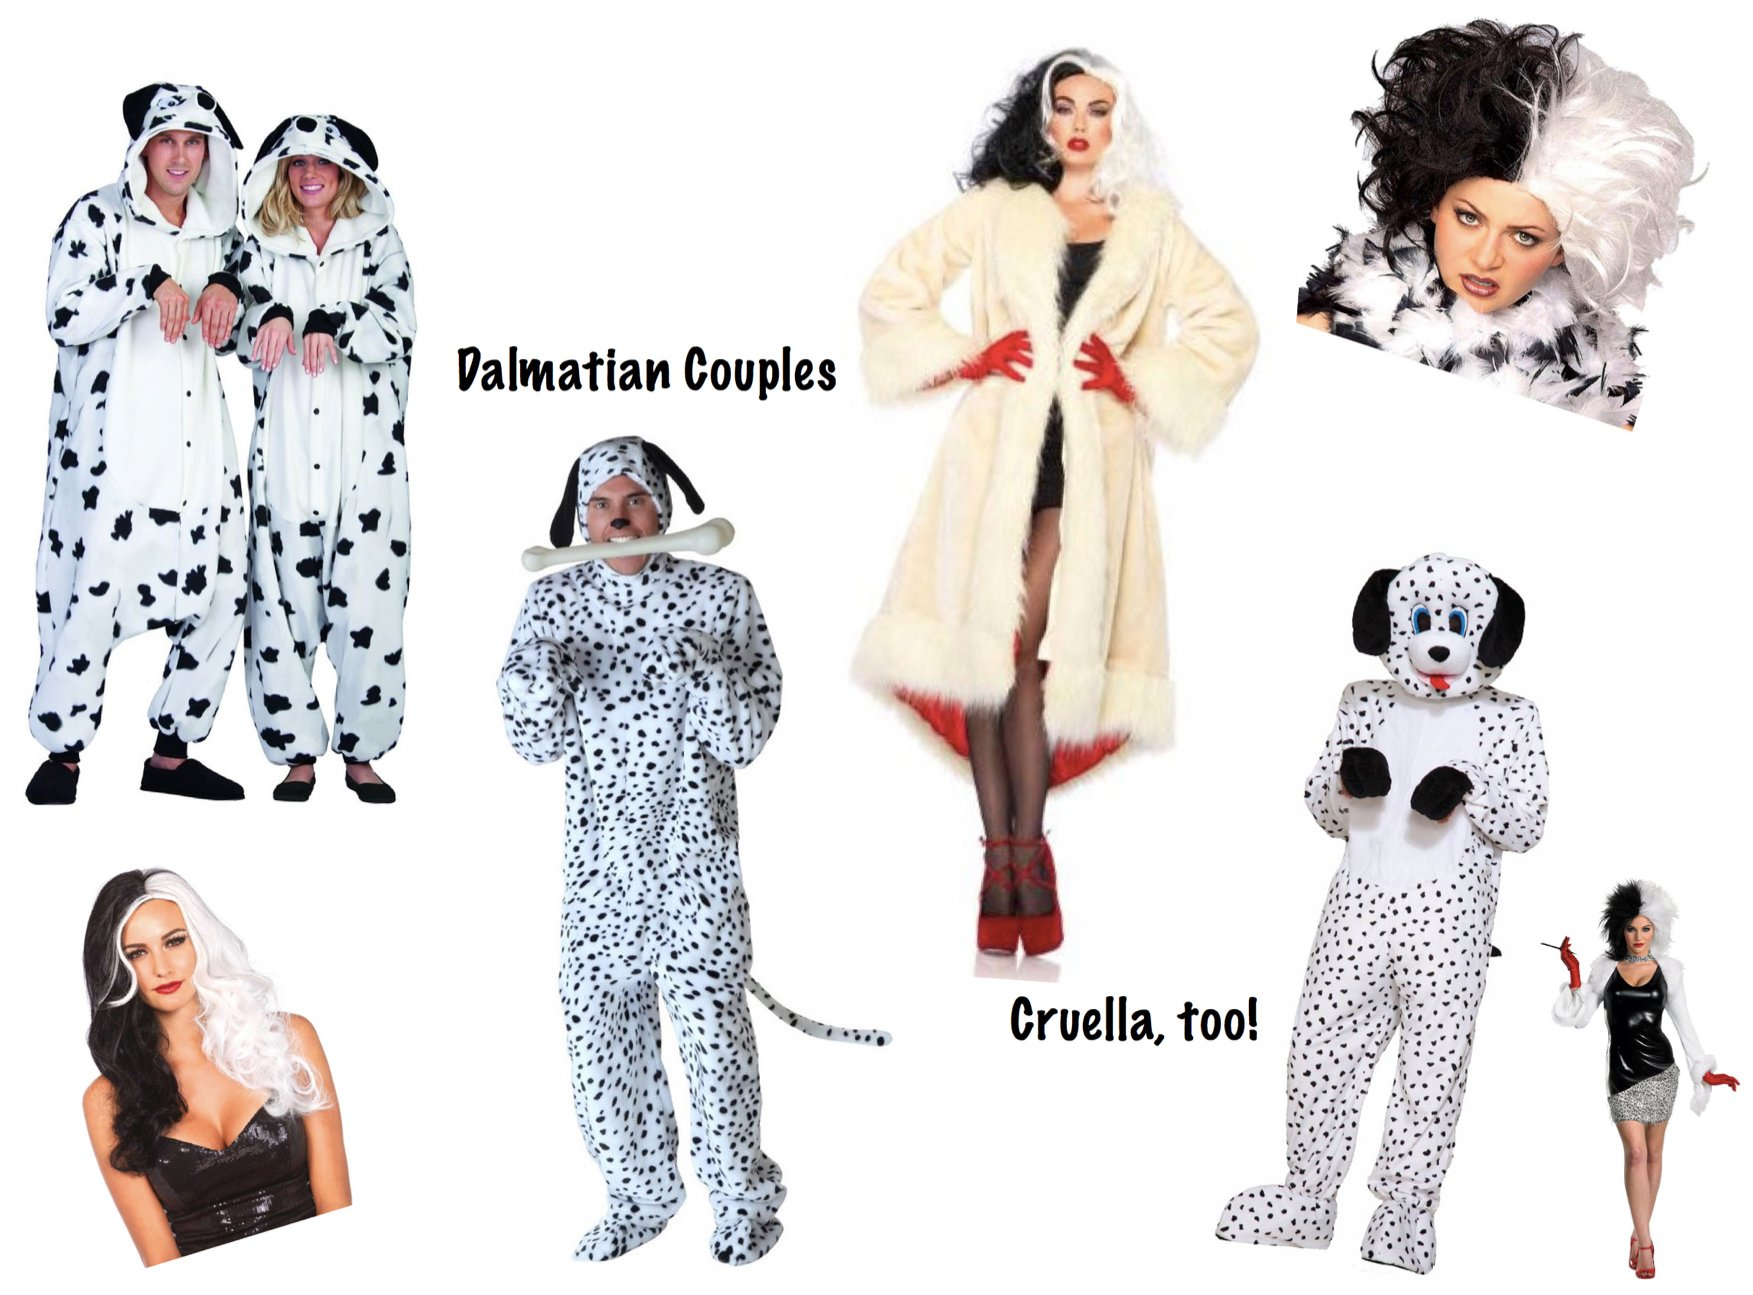 Dalmatian & Cruella Couples Costumes